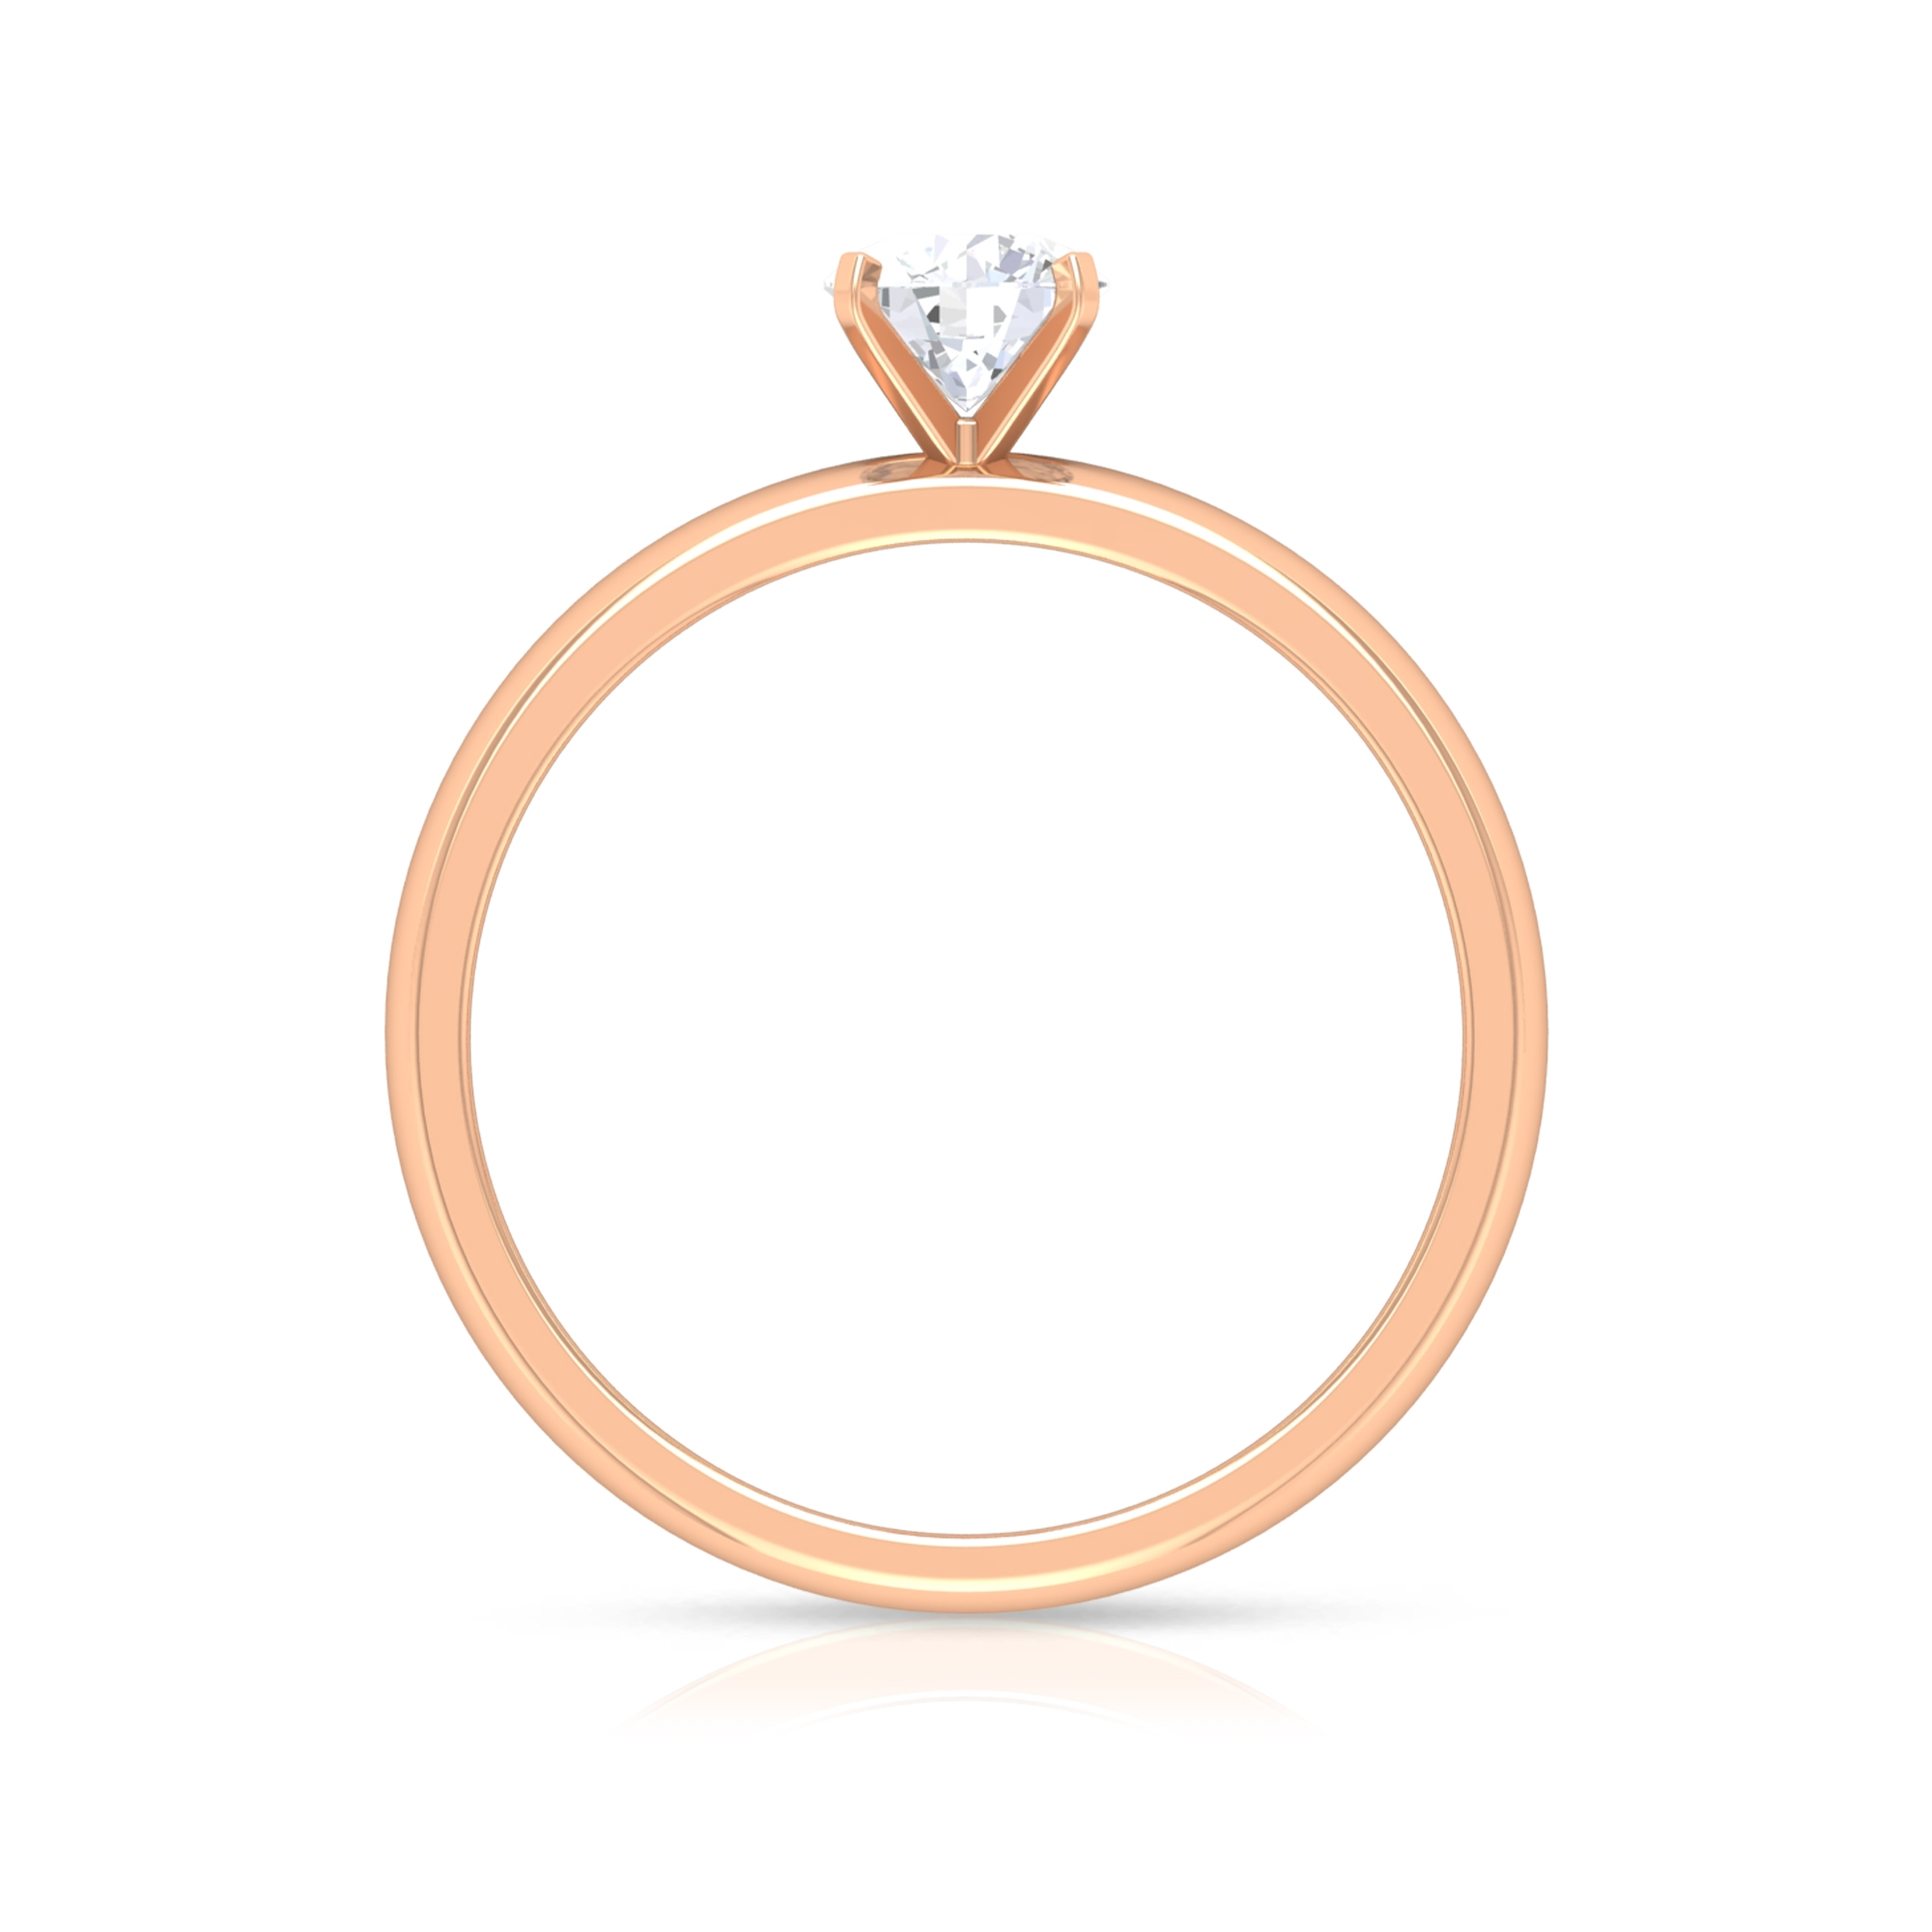 5 MM Round Cut Diamond Solitaire Ring in Peg Head Setting